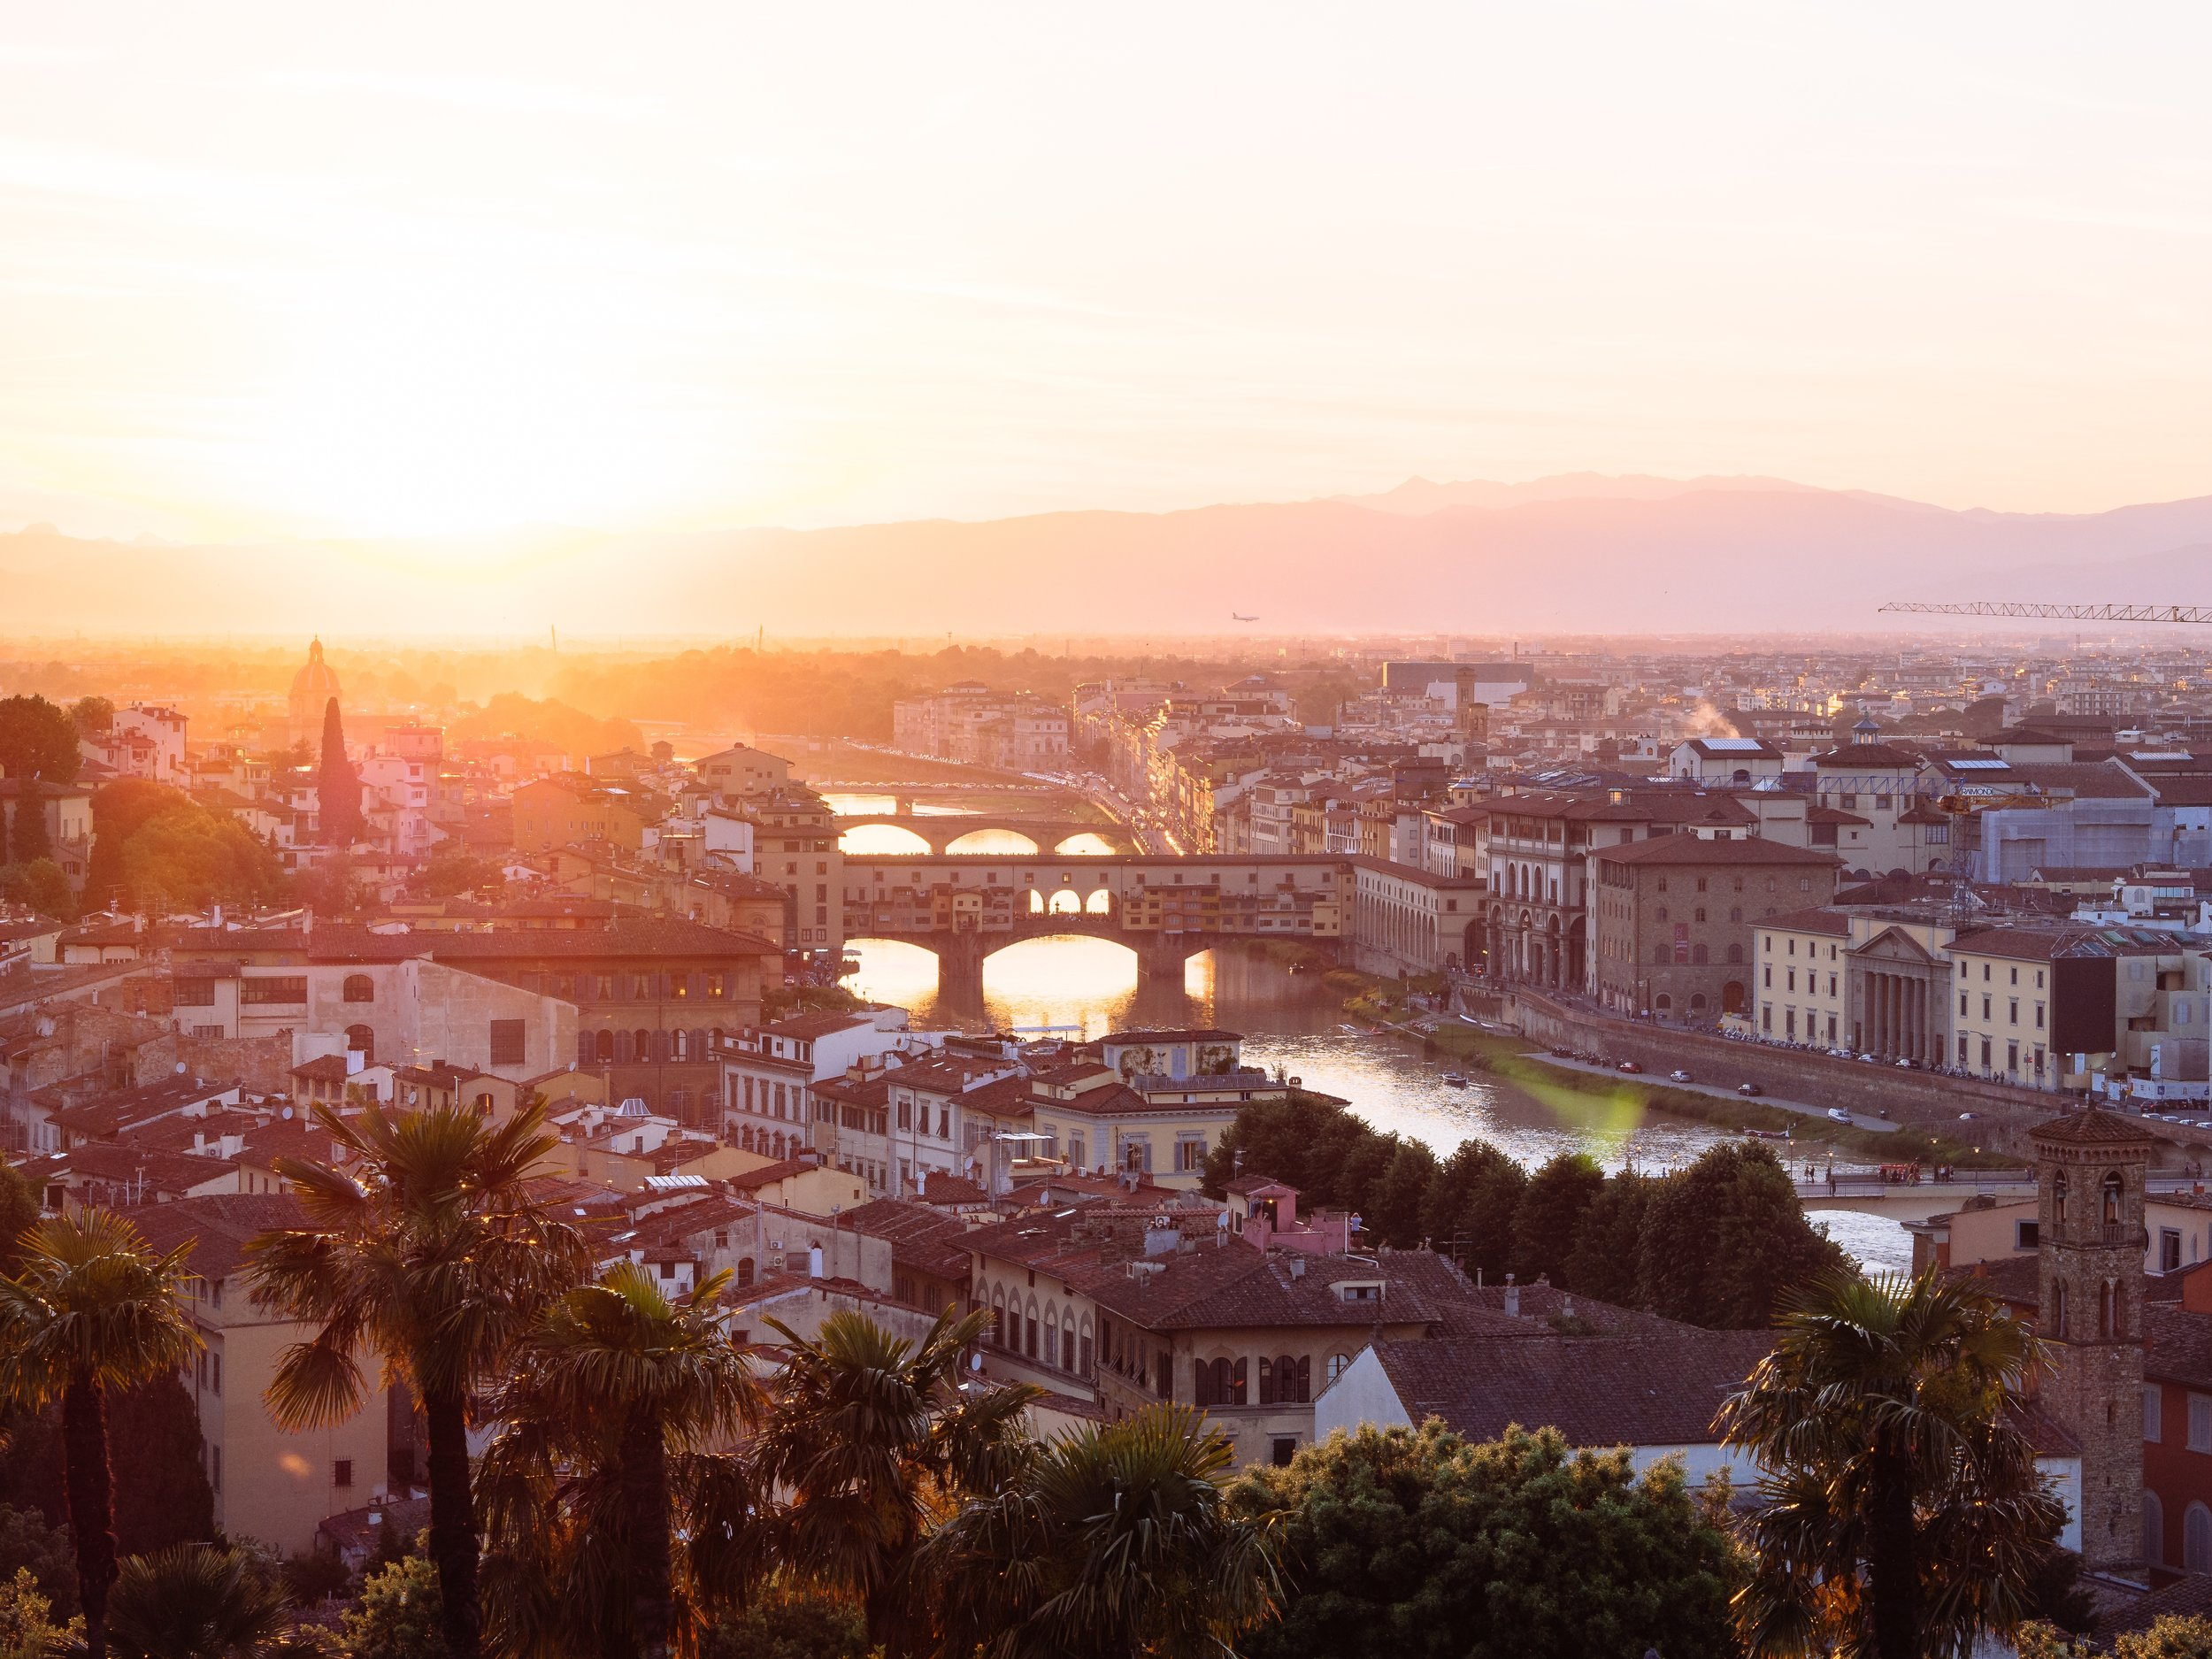 Grab a bottle of wine, sit on the steps of Piazza Michaelangelo and watch the sunset!